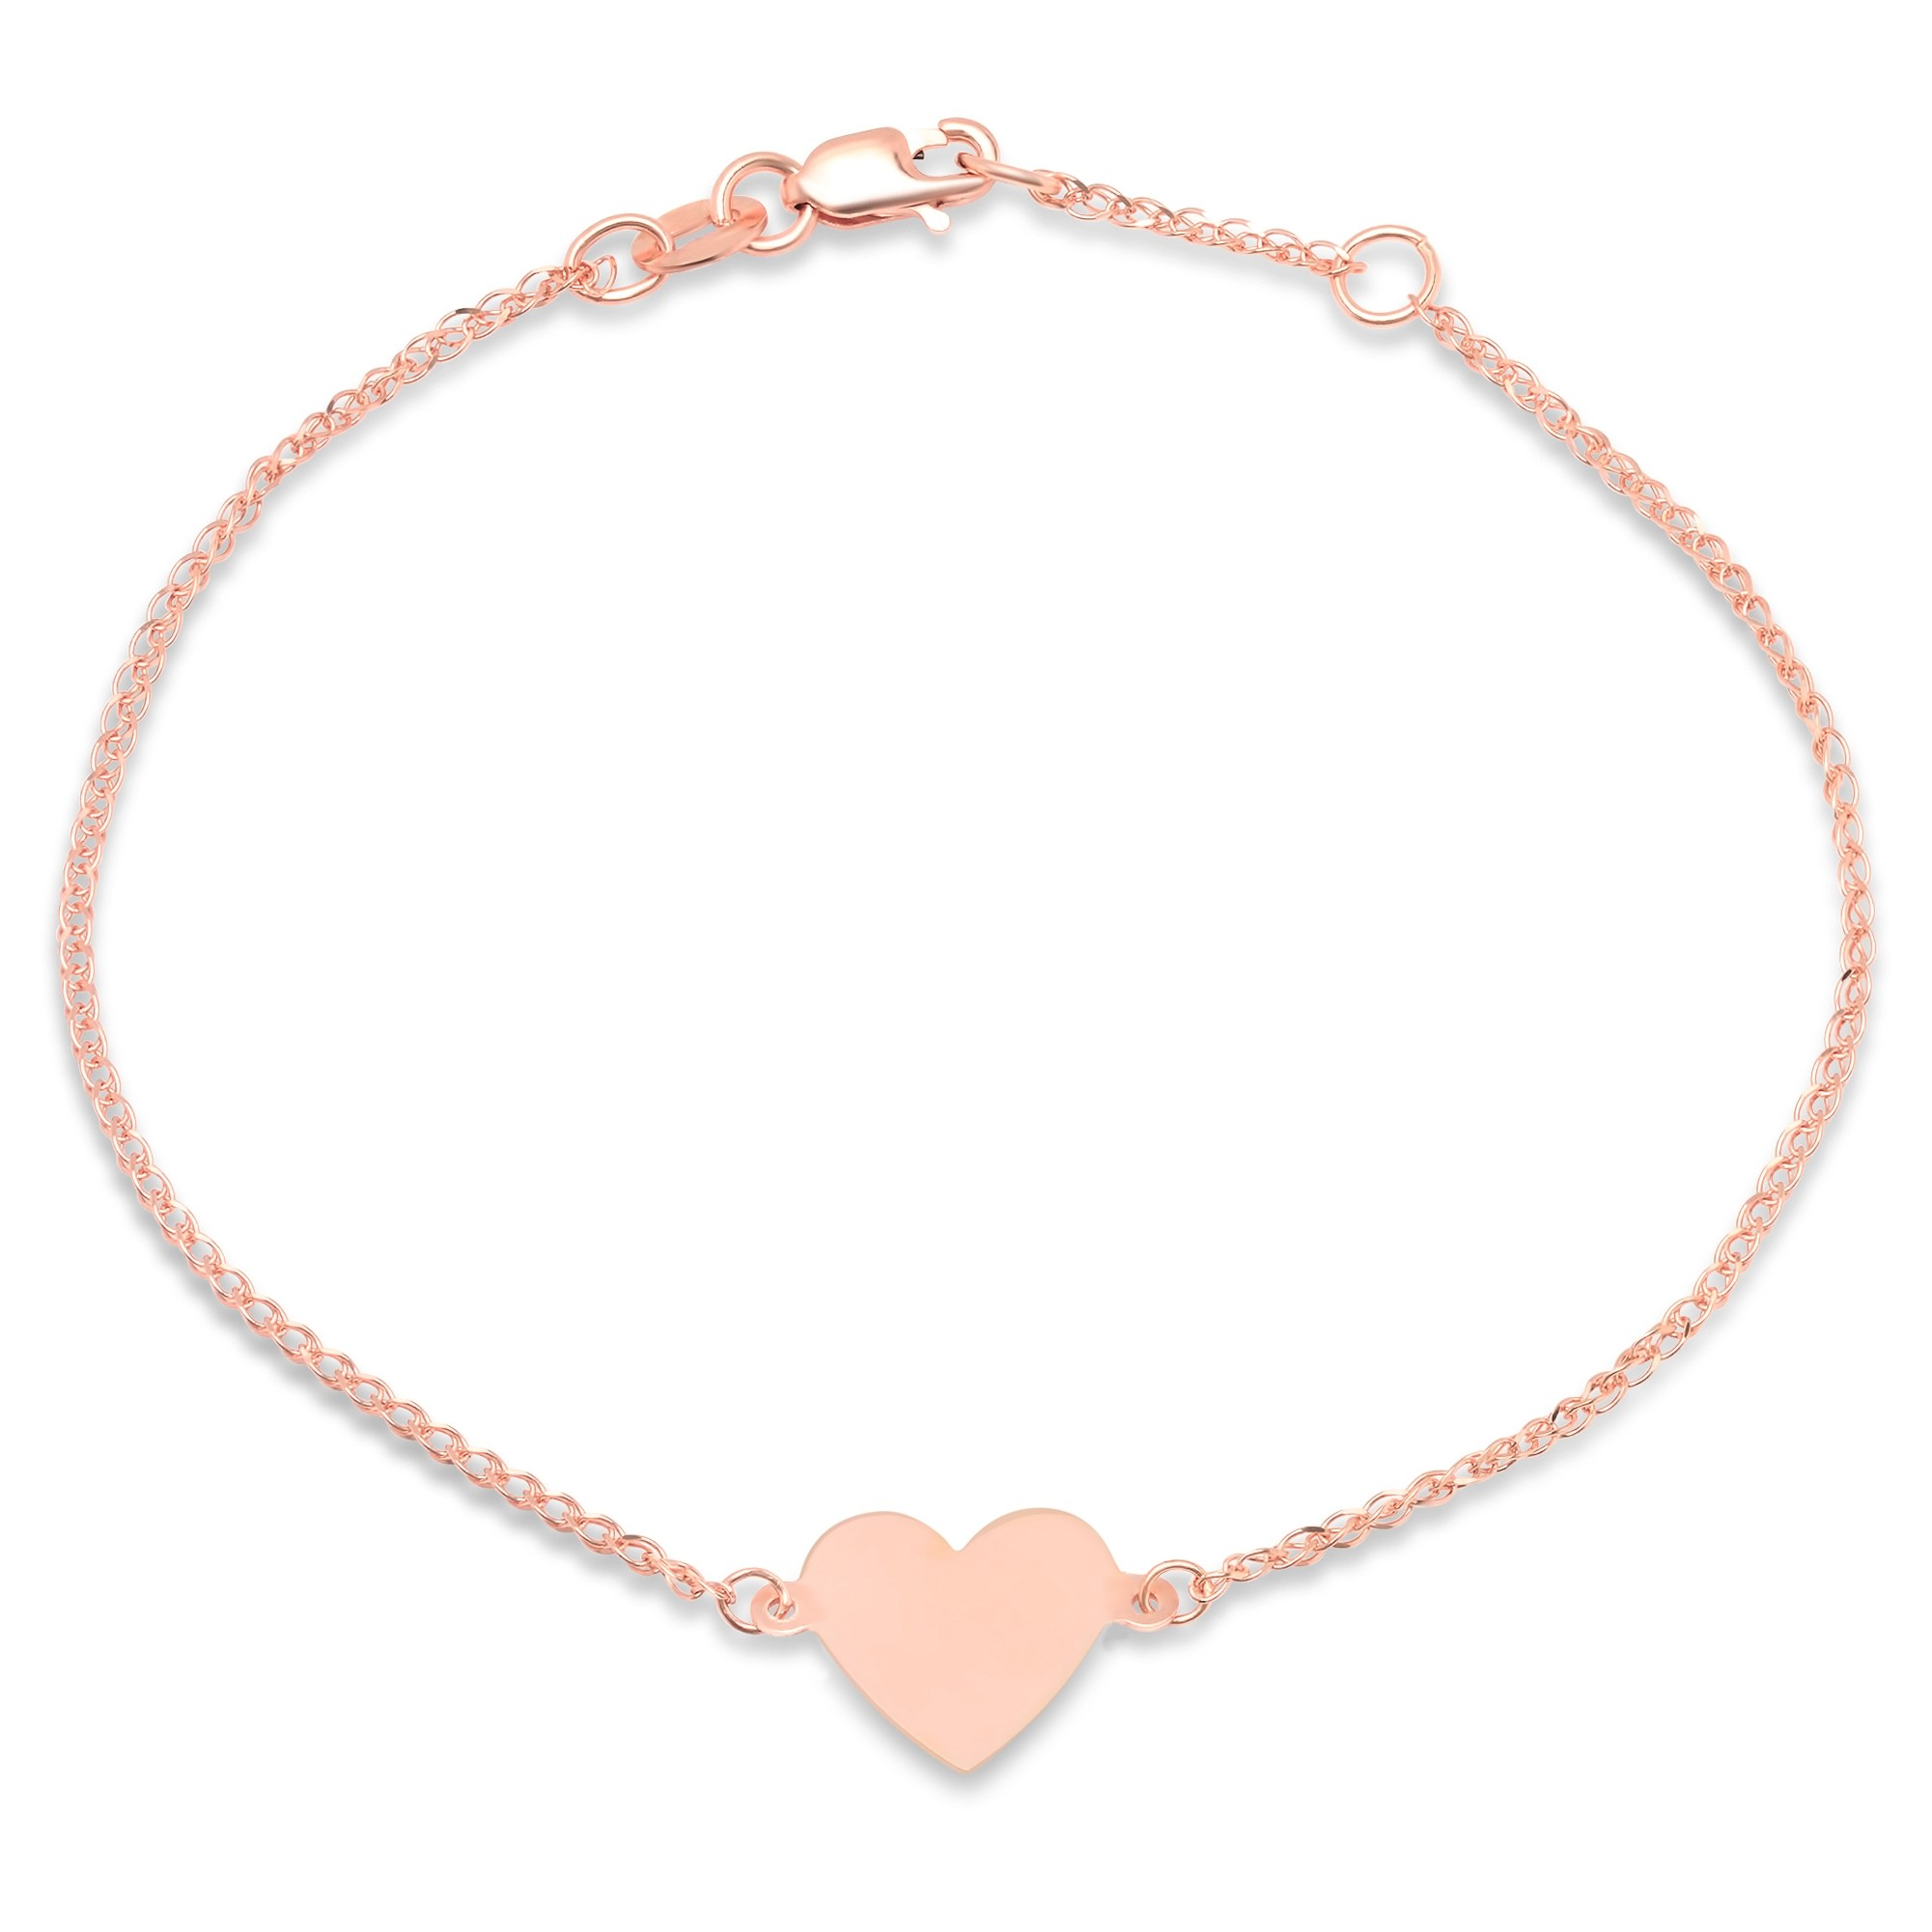 jewellery three bonas oliver bracelet heart textured silver